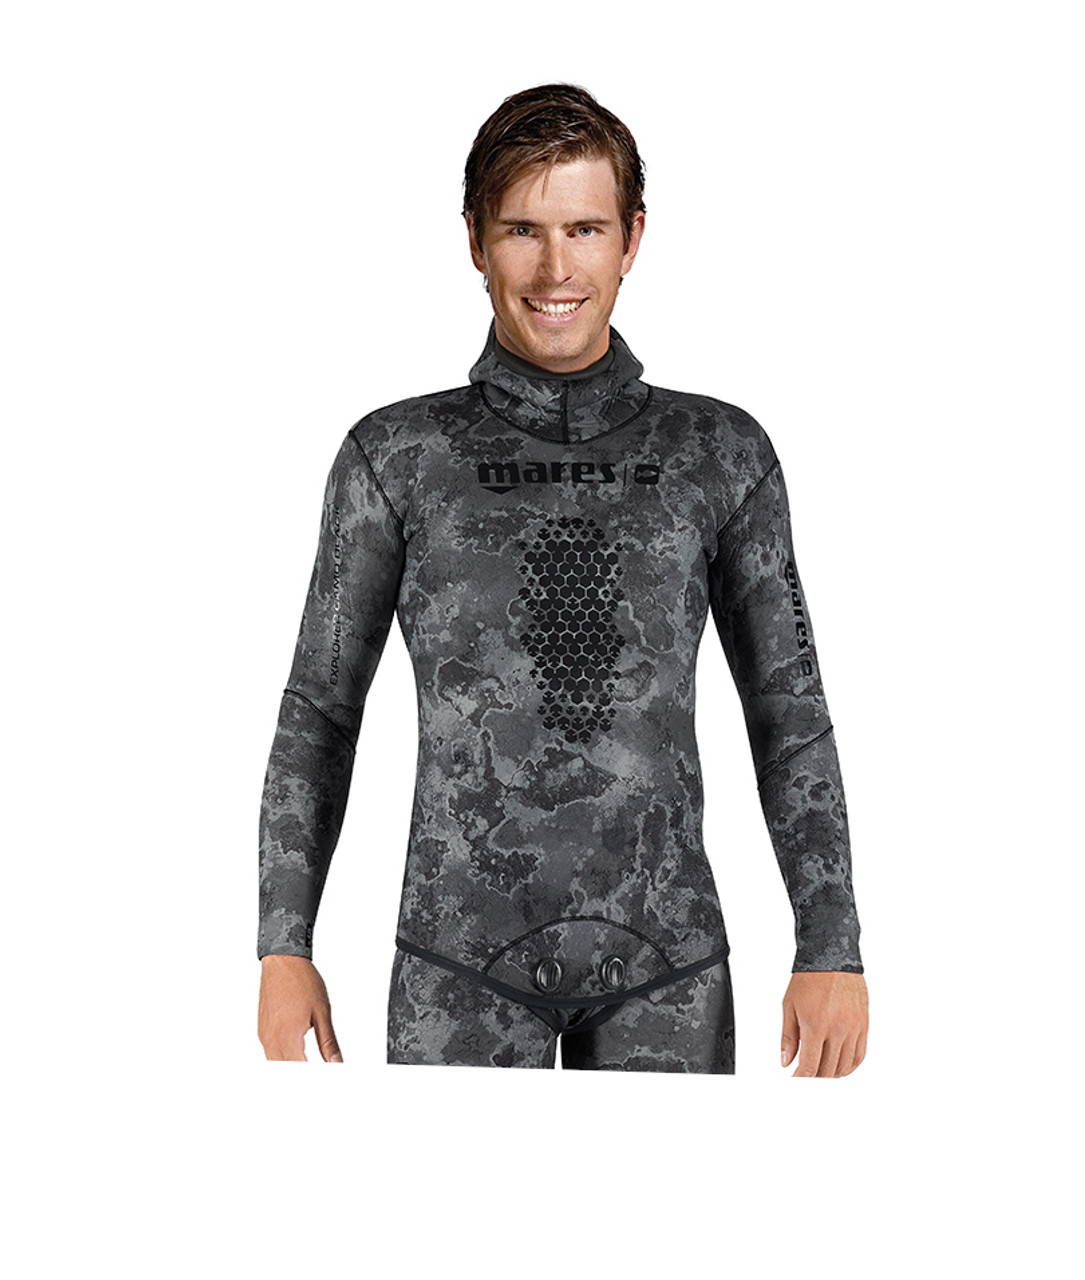 Mares 3mm Explorer Wetsuit (Jacket Only) - Freediving Scuba Diving - Black Camo